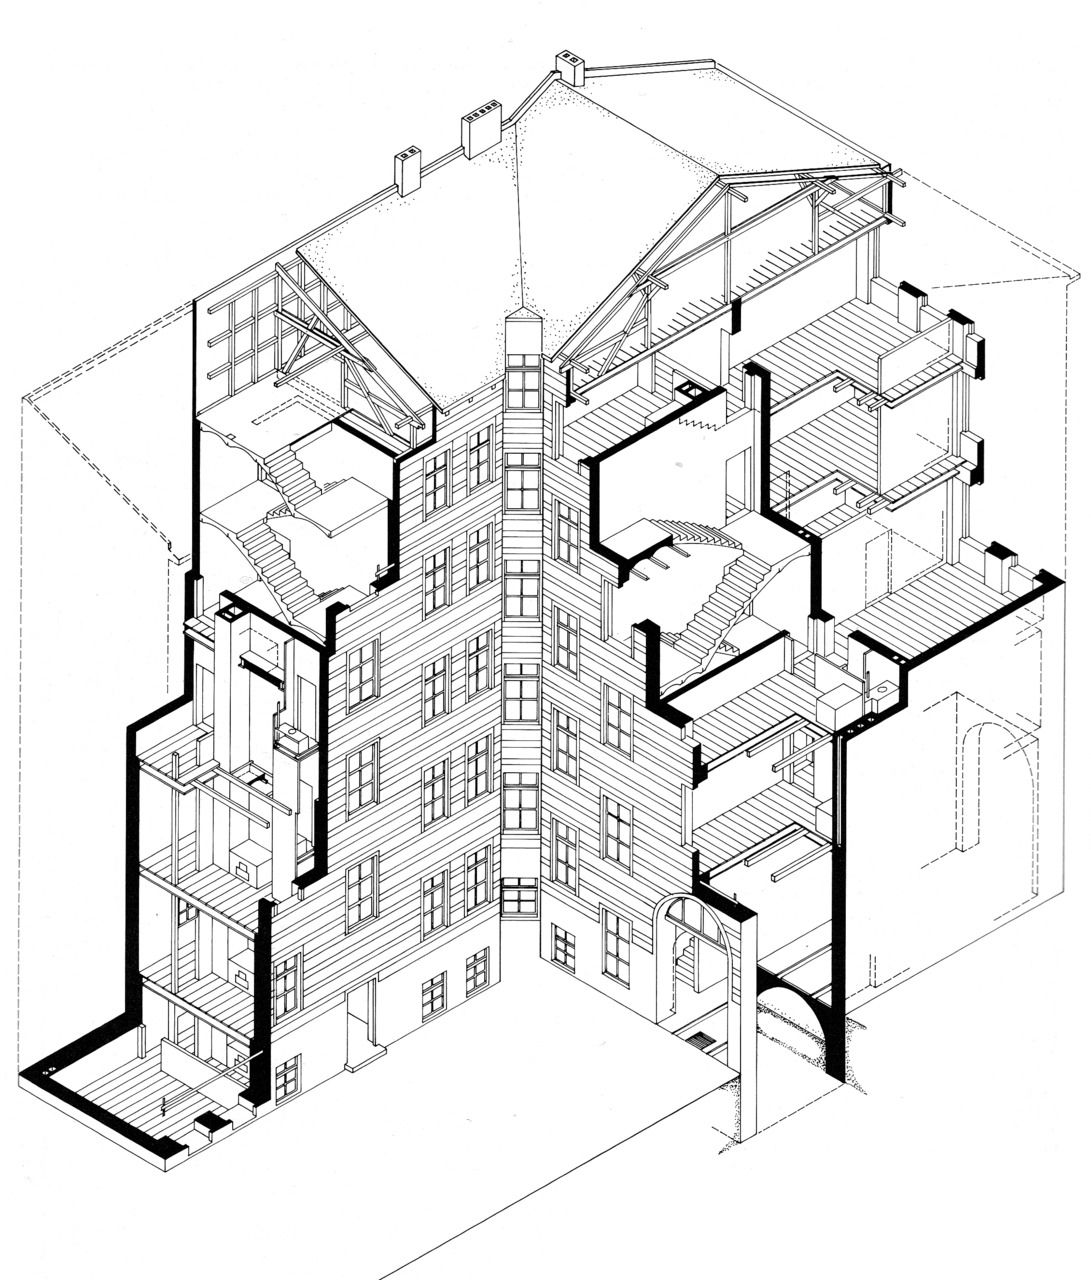 Image Result For Sectional Axonometric